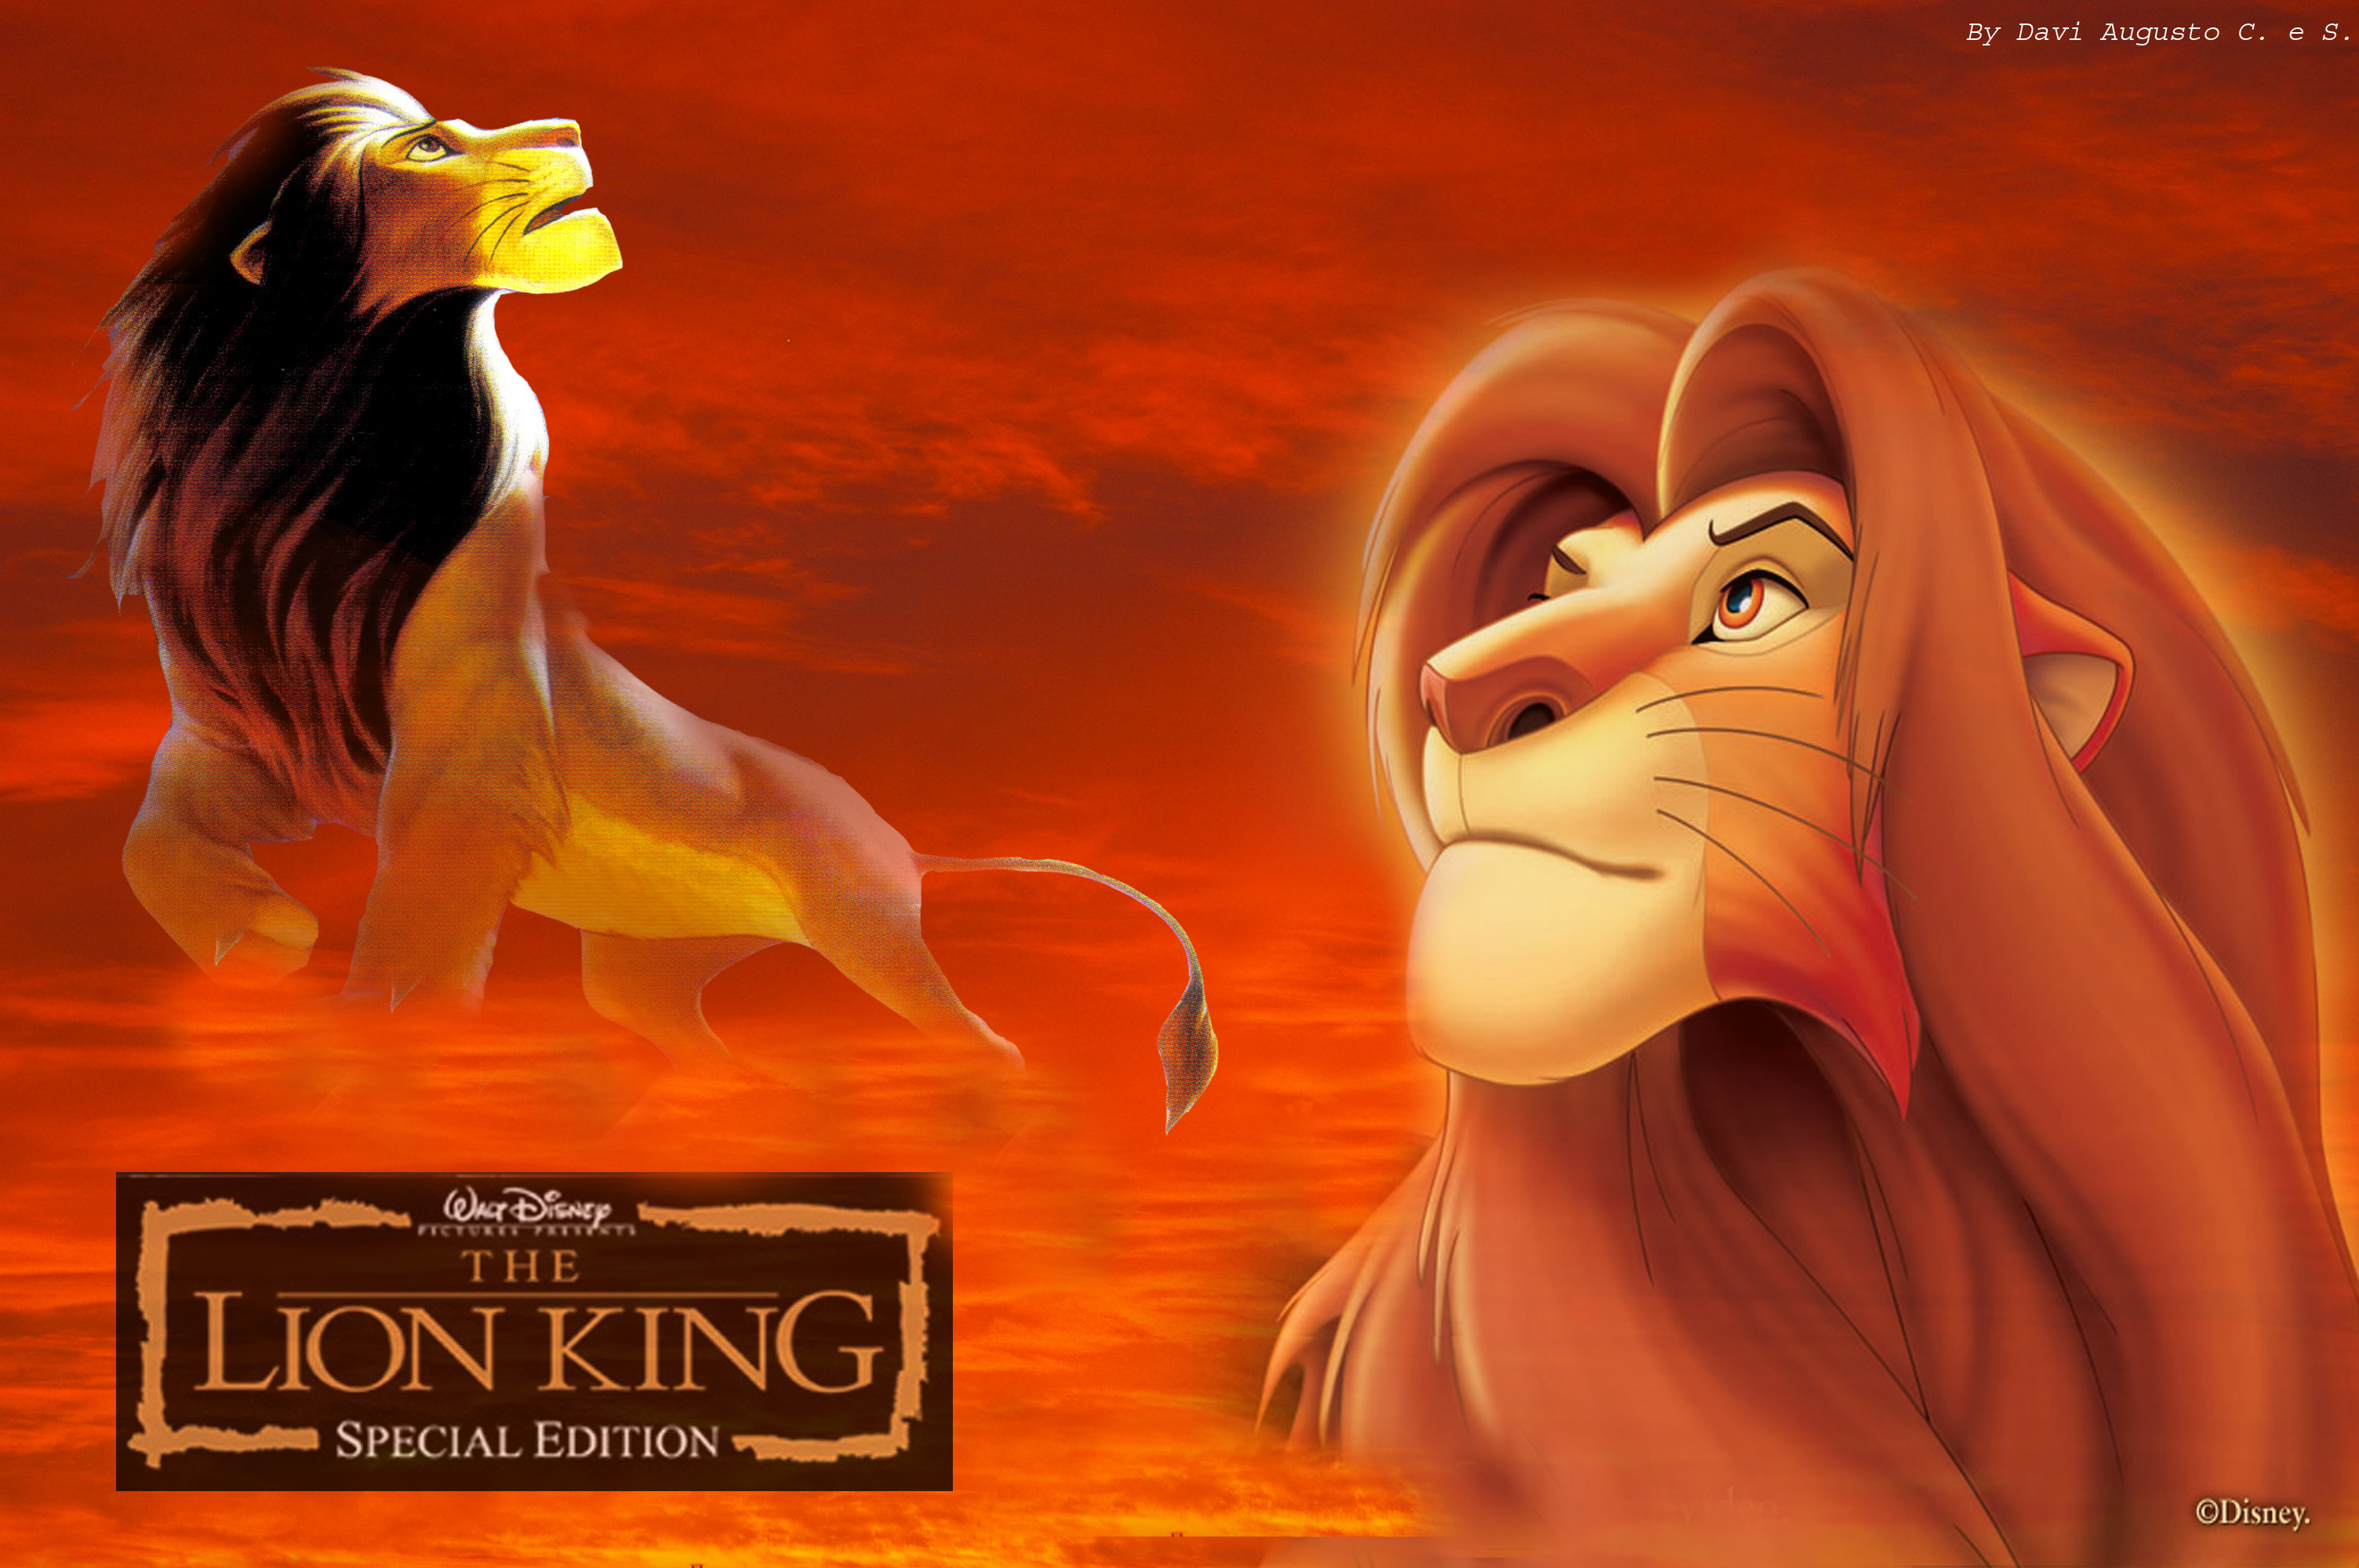 mis imagenes favoritas¡ Lion_king_wallpaper_2_by_daviskingdom-d36ogqi